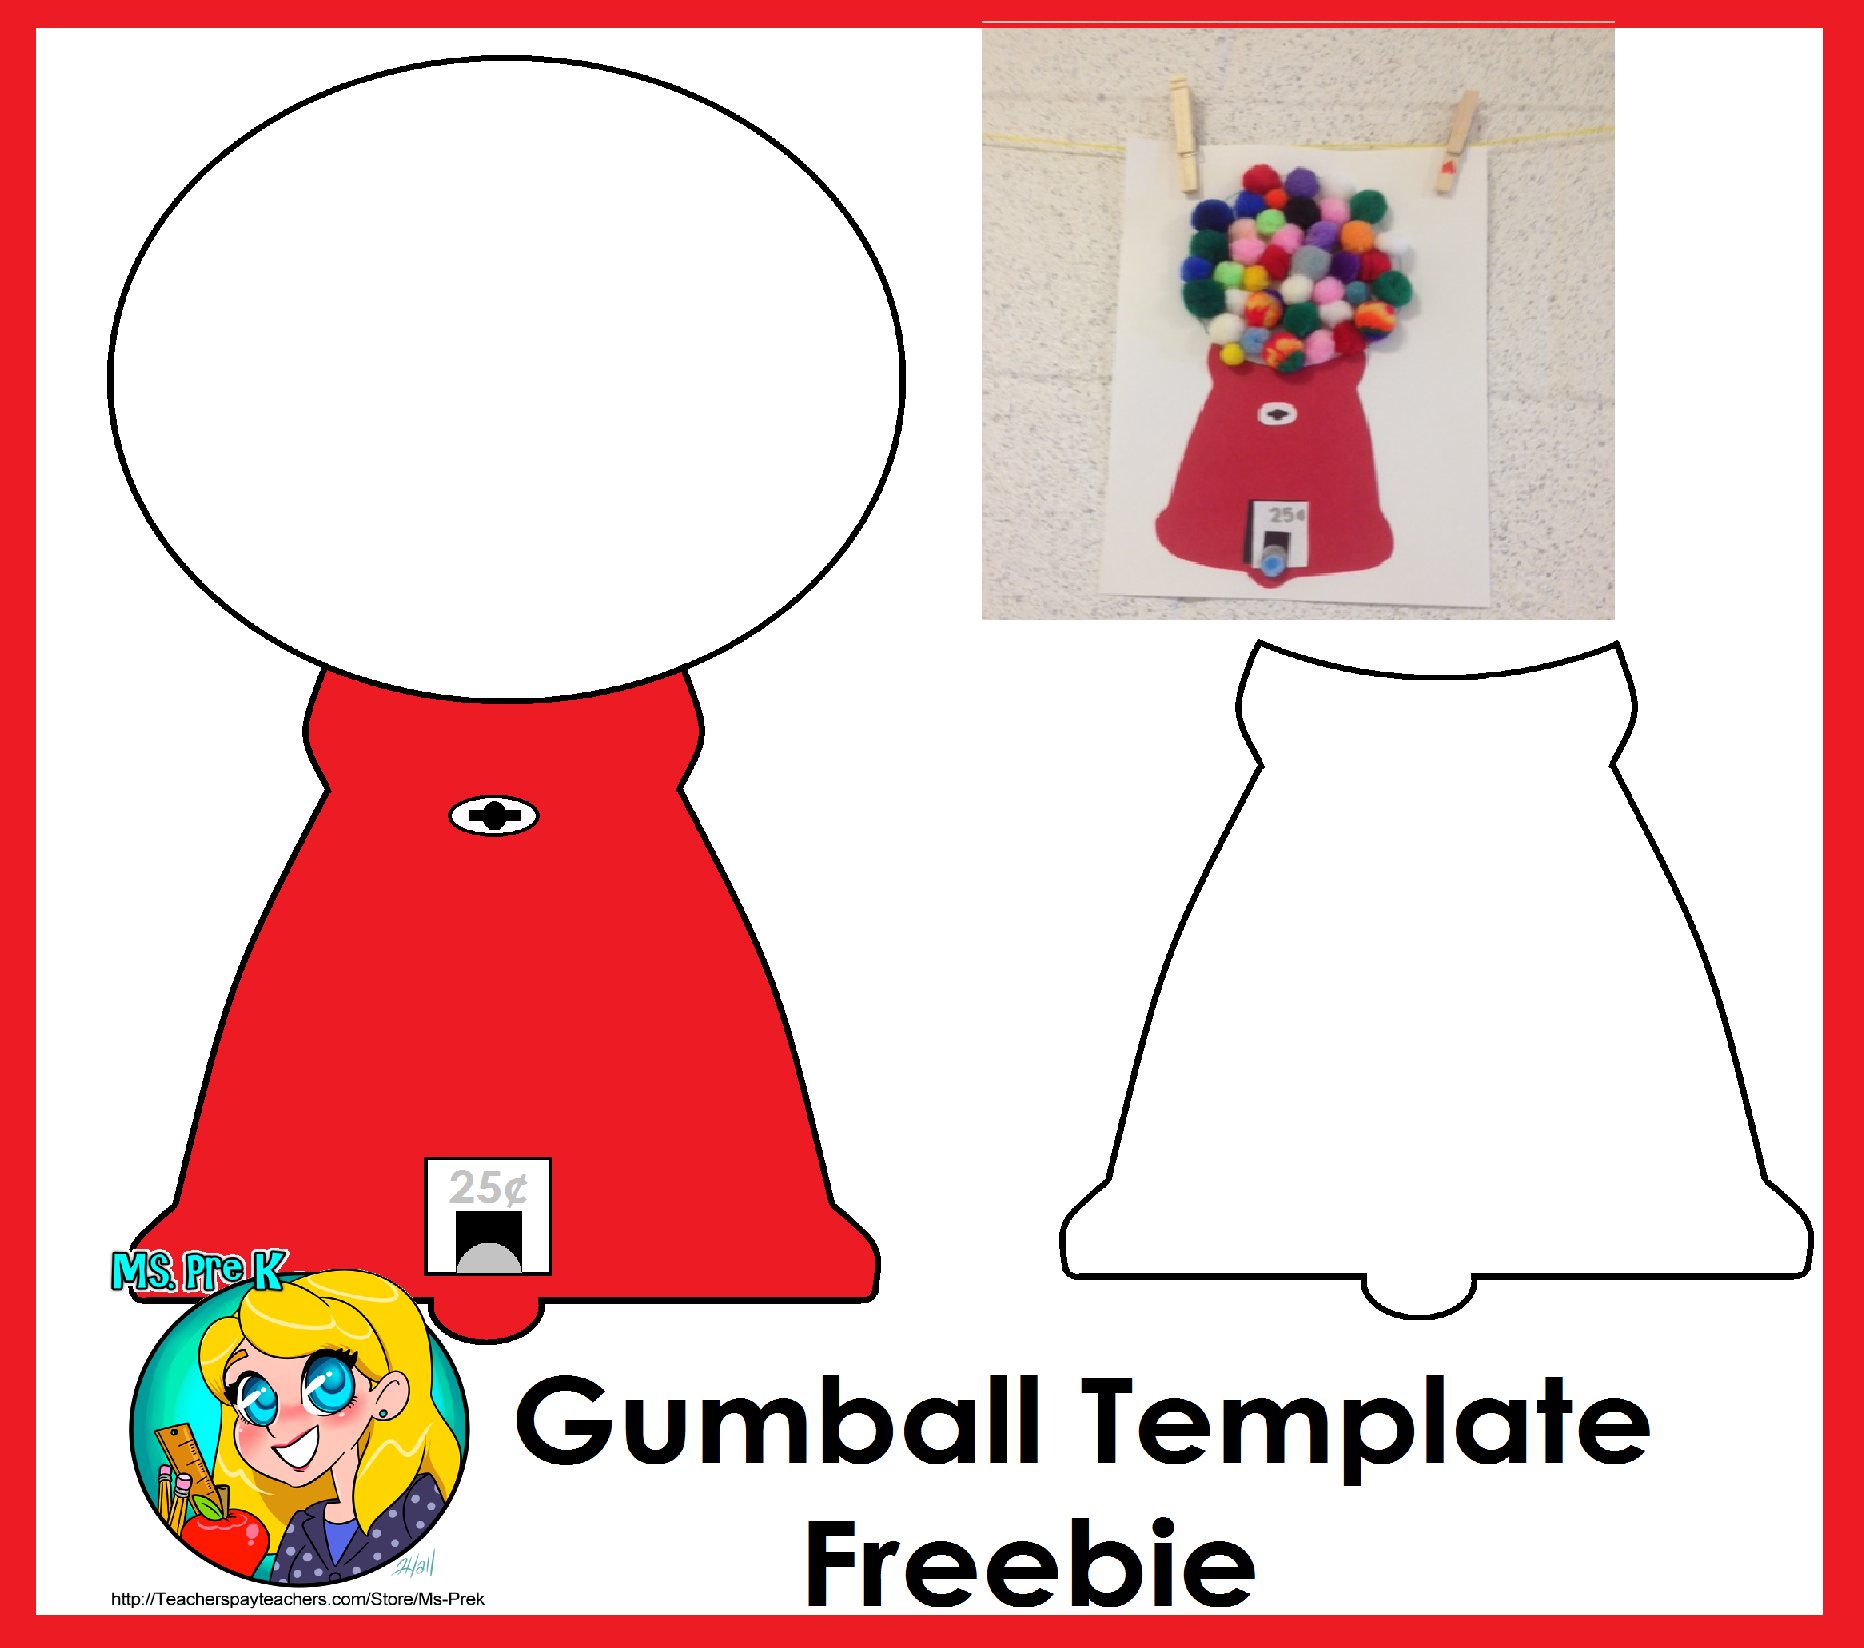 Freebie Template To Create This Gumball Machine Blog